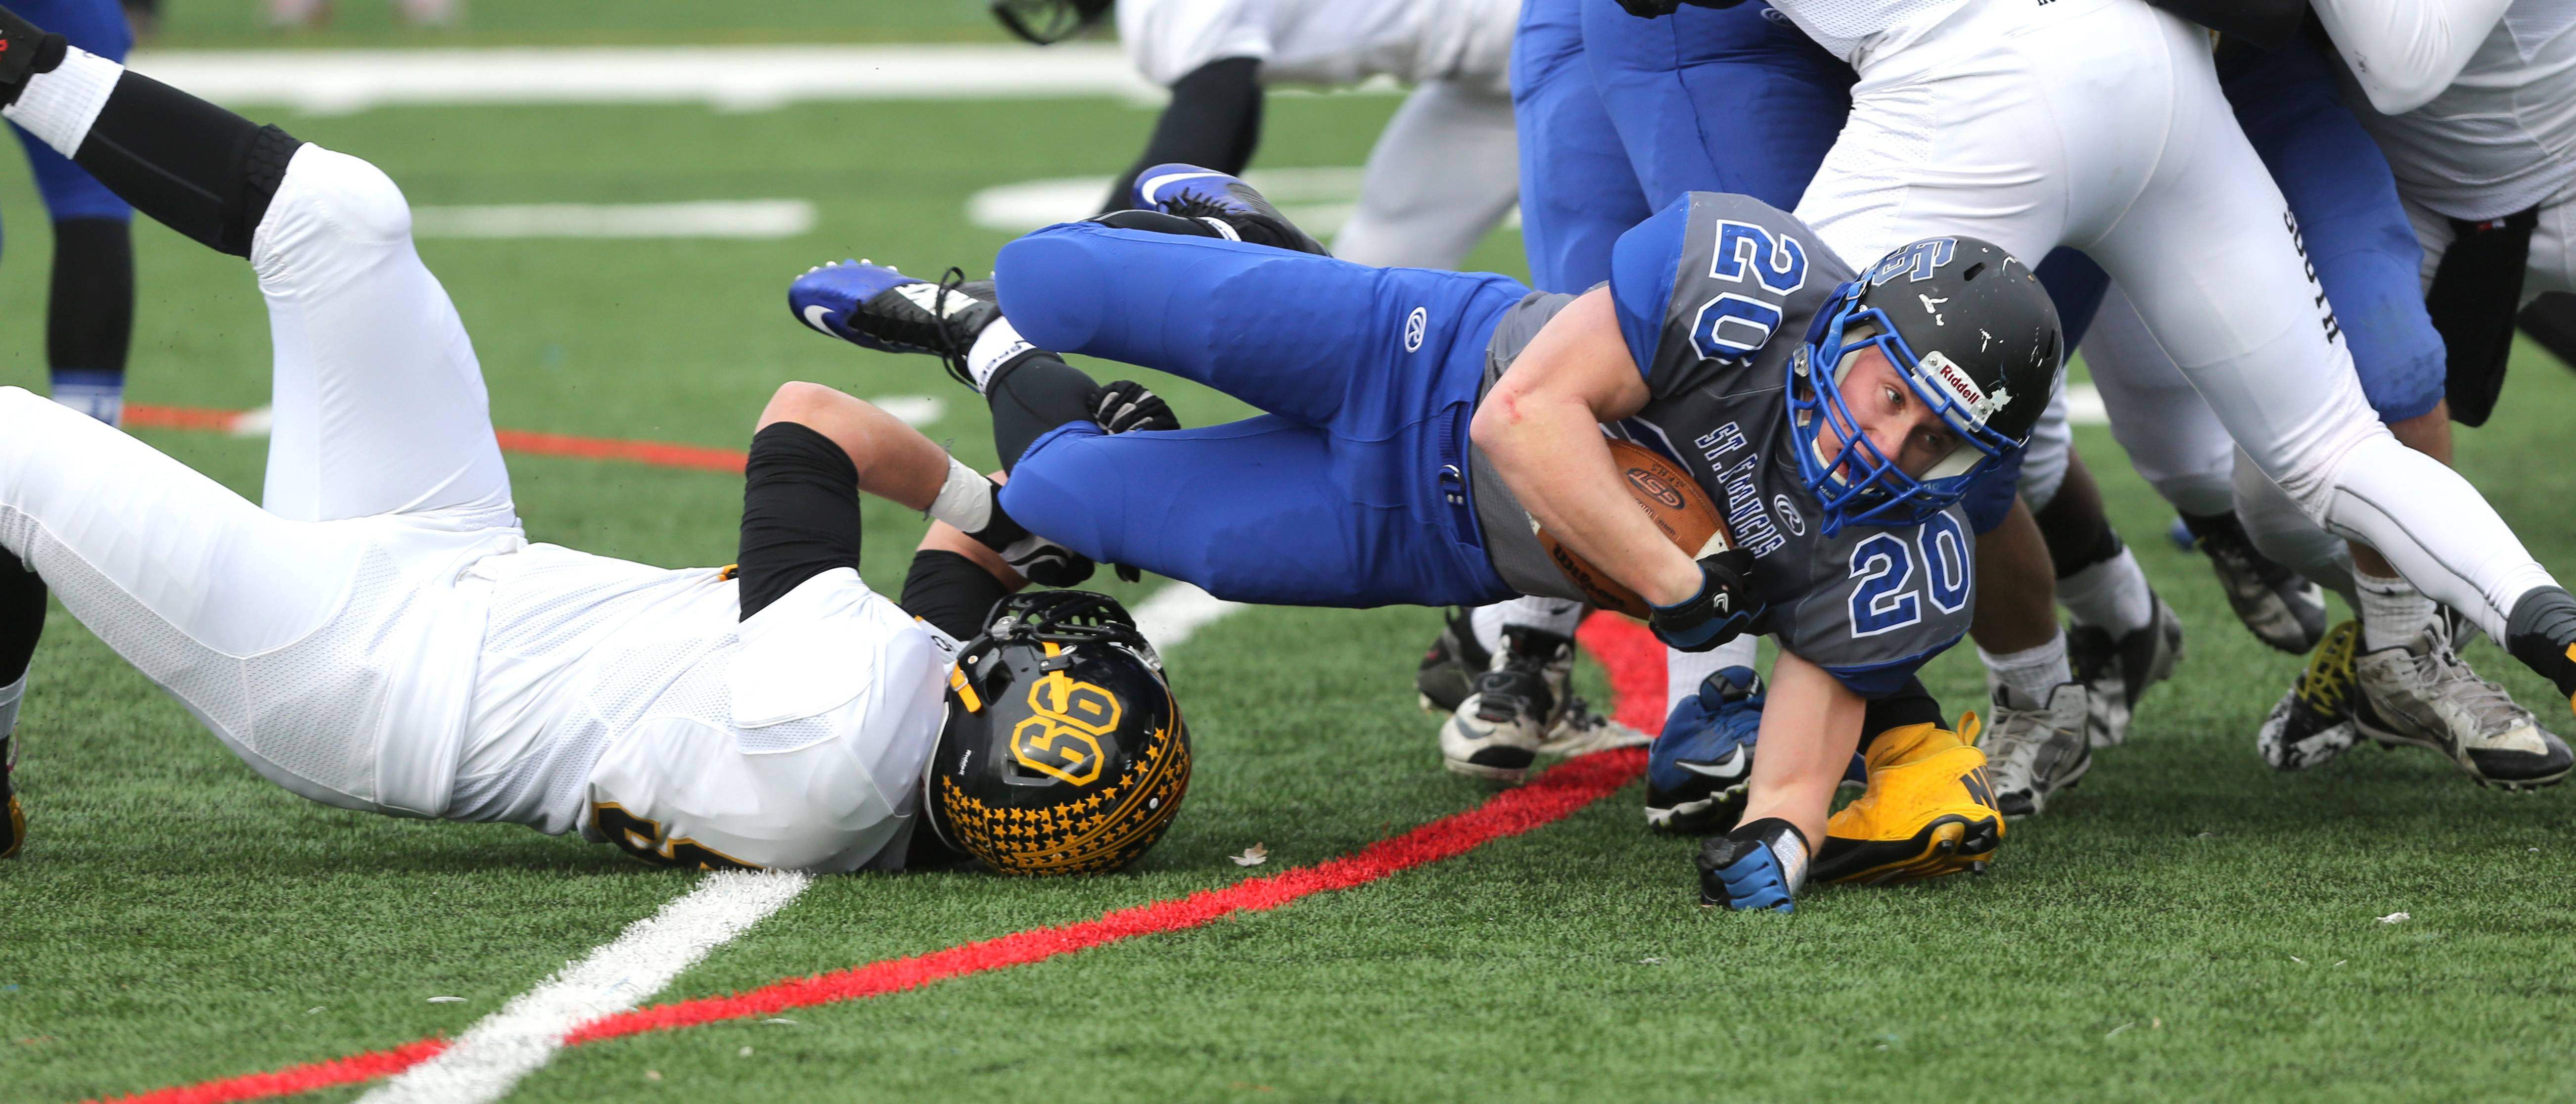 St. Francis running back Steven Fassnacht gains yardage against Hinsdale South.